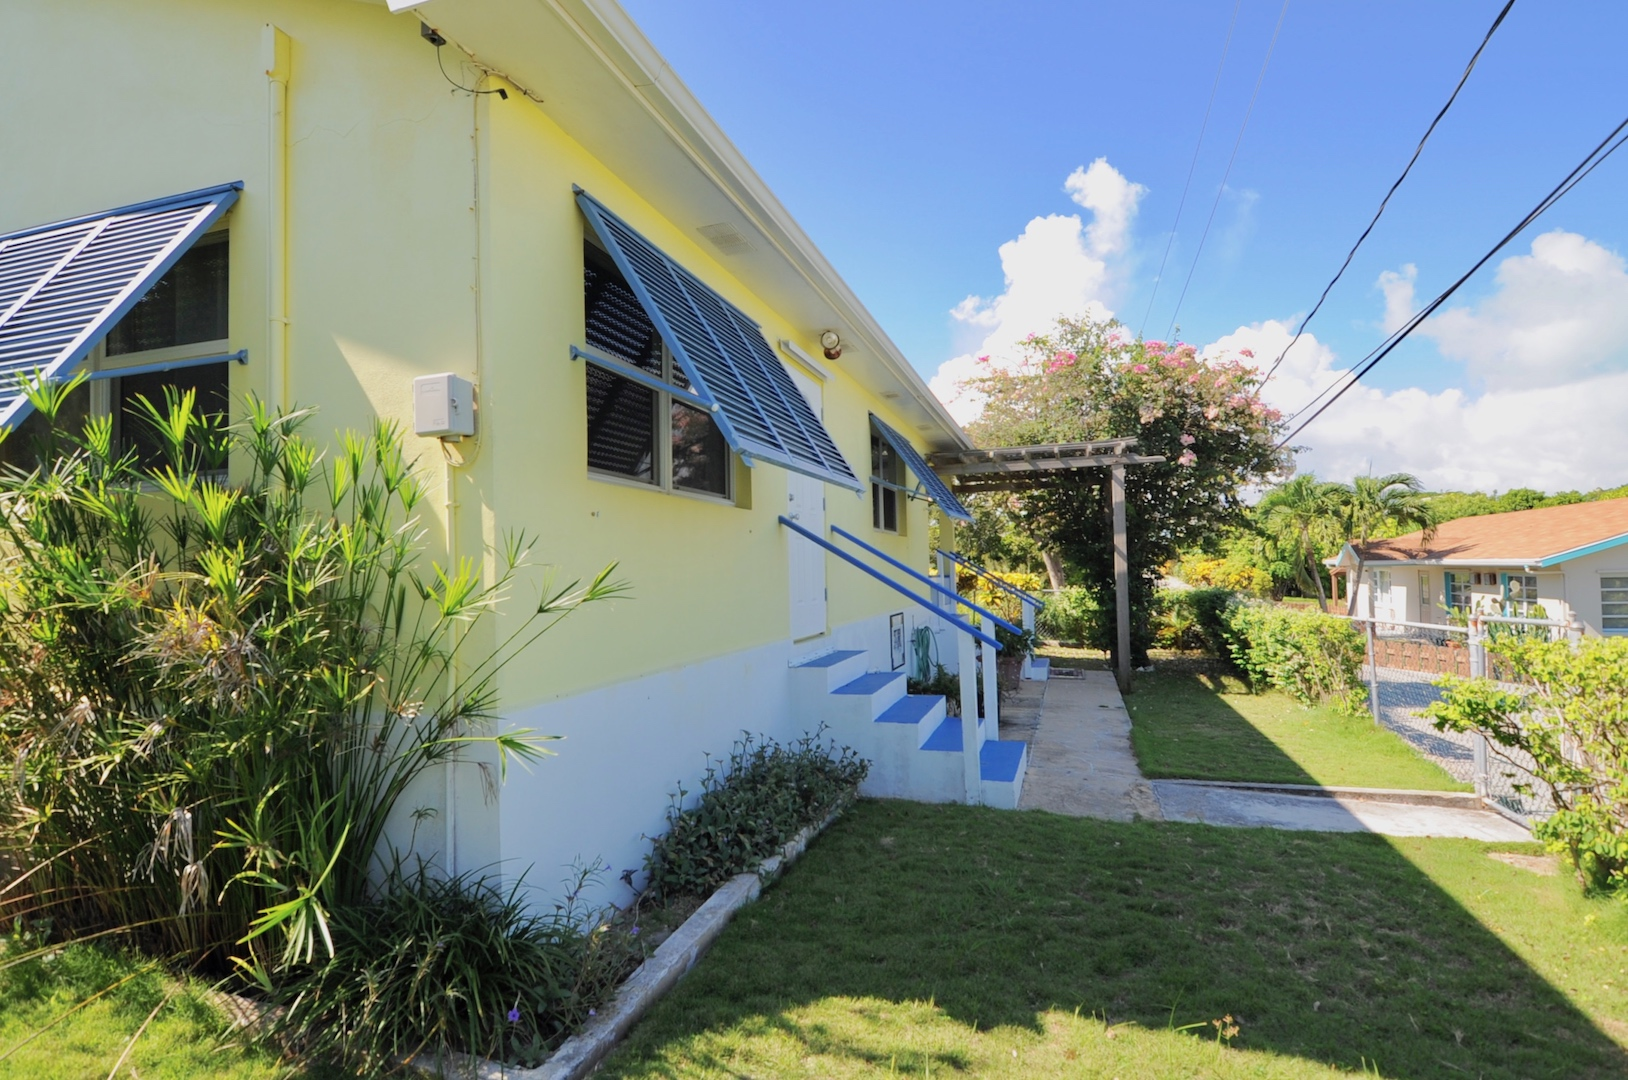 Home for sale in Man-o-War Cay Abaco Bahamas